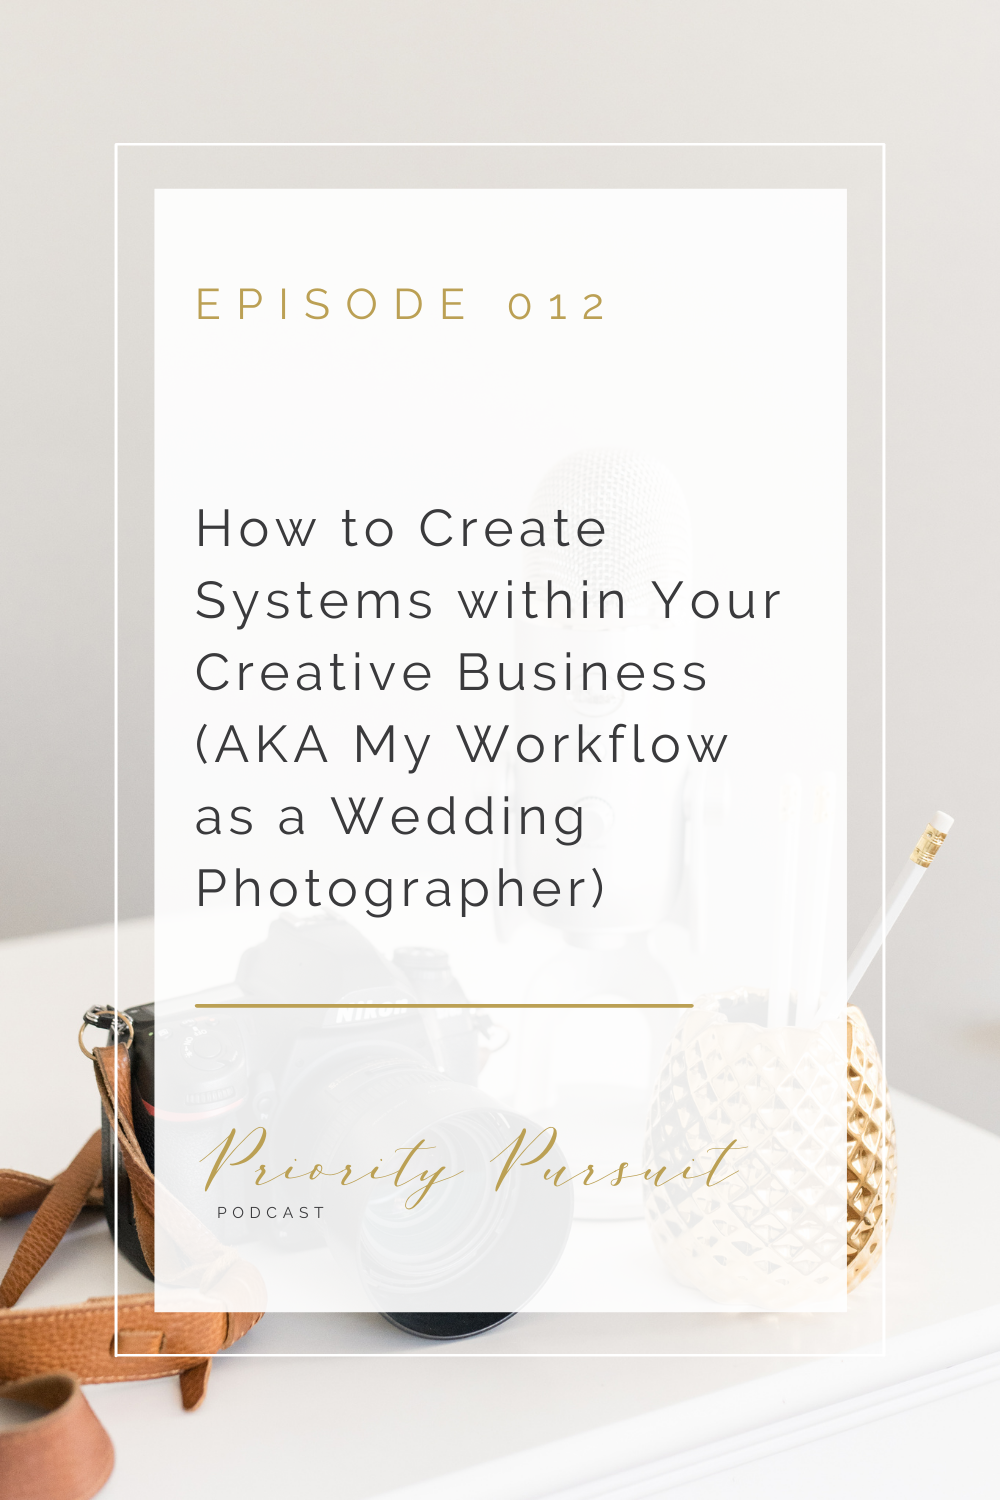 """Lafayette, Indiana Wedding Photographer Victoria Rayburn explains how to create systems within your creative business on """"The Priority Pursuit Podcast."""""""